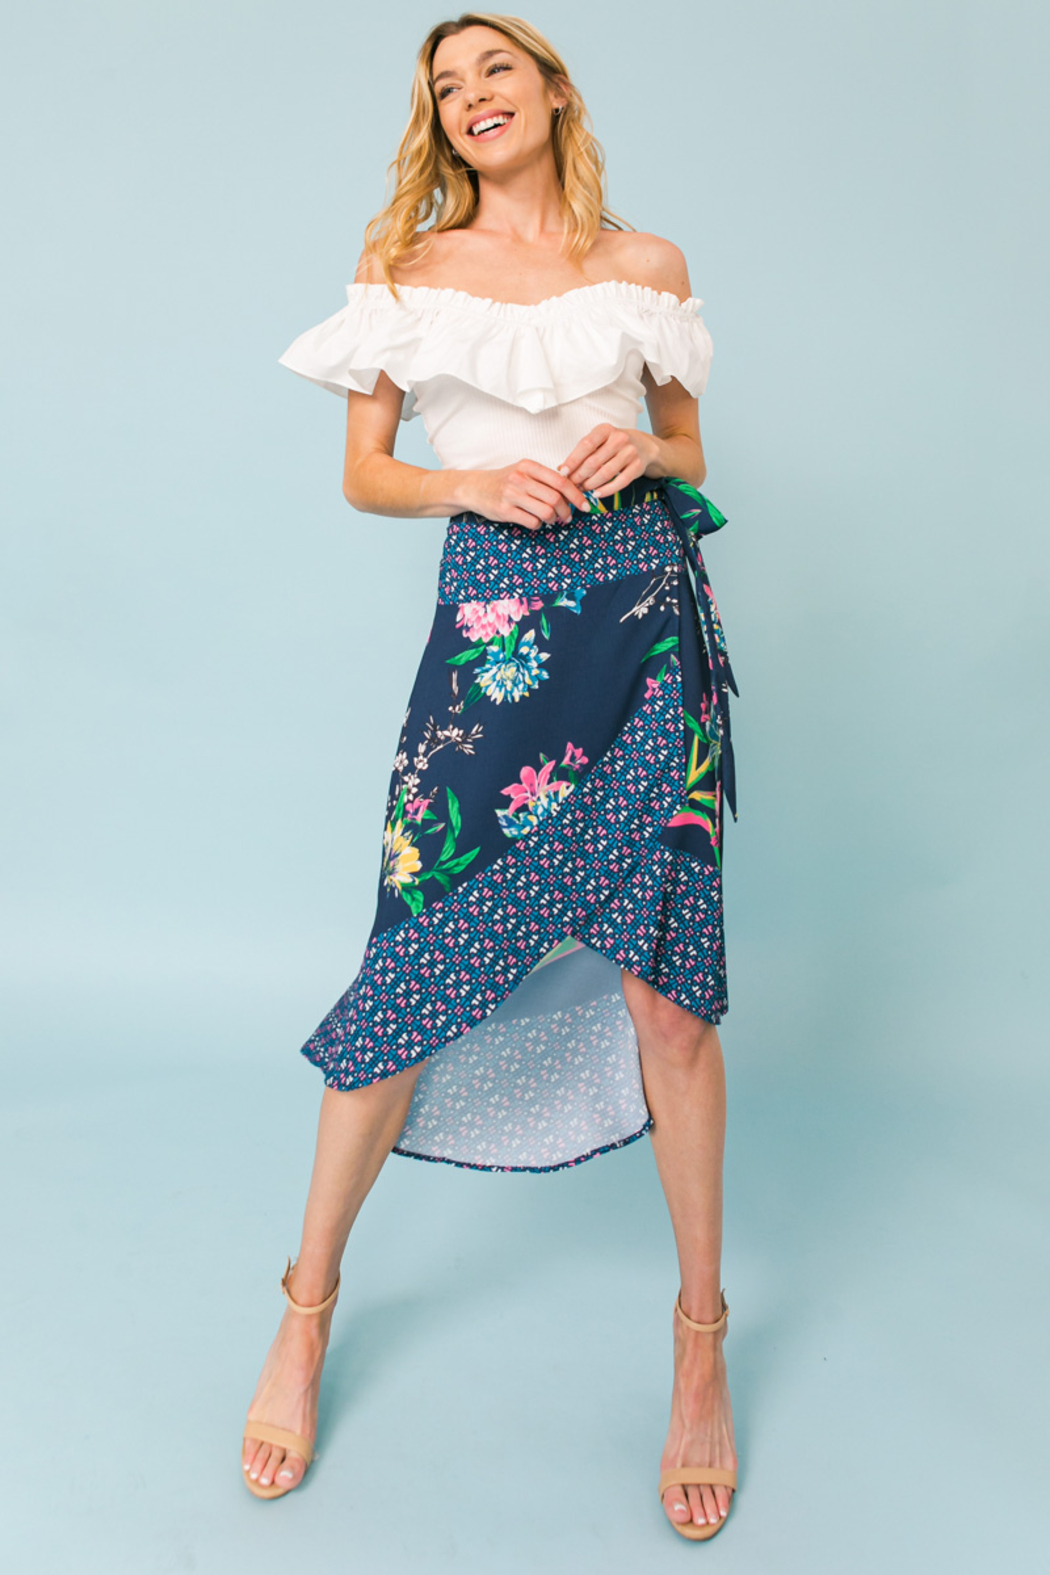 Flying Tomato  SKIRT FLORAL PRINT - Back Cropped Image